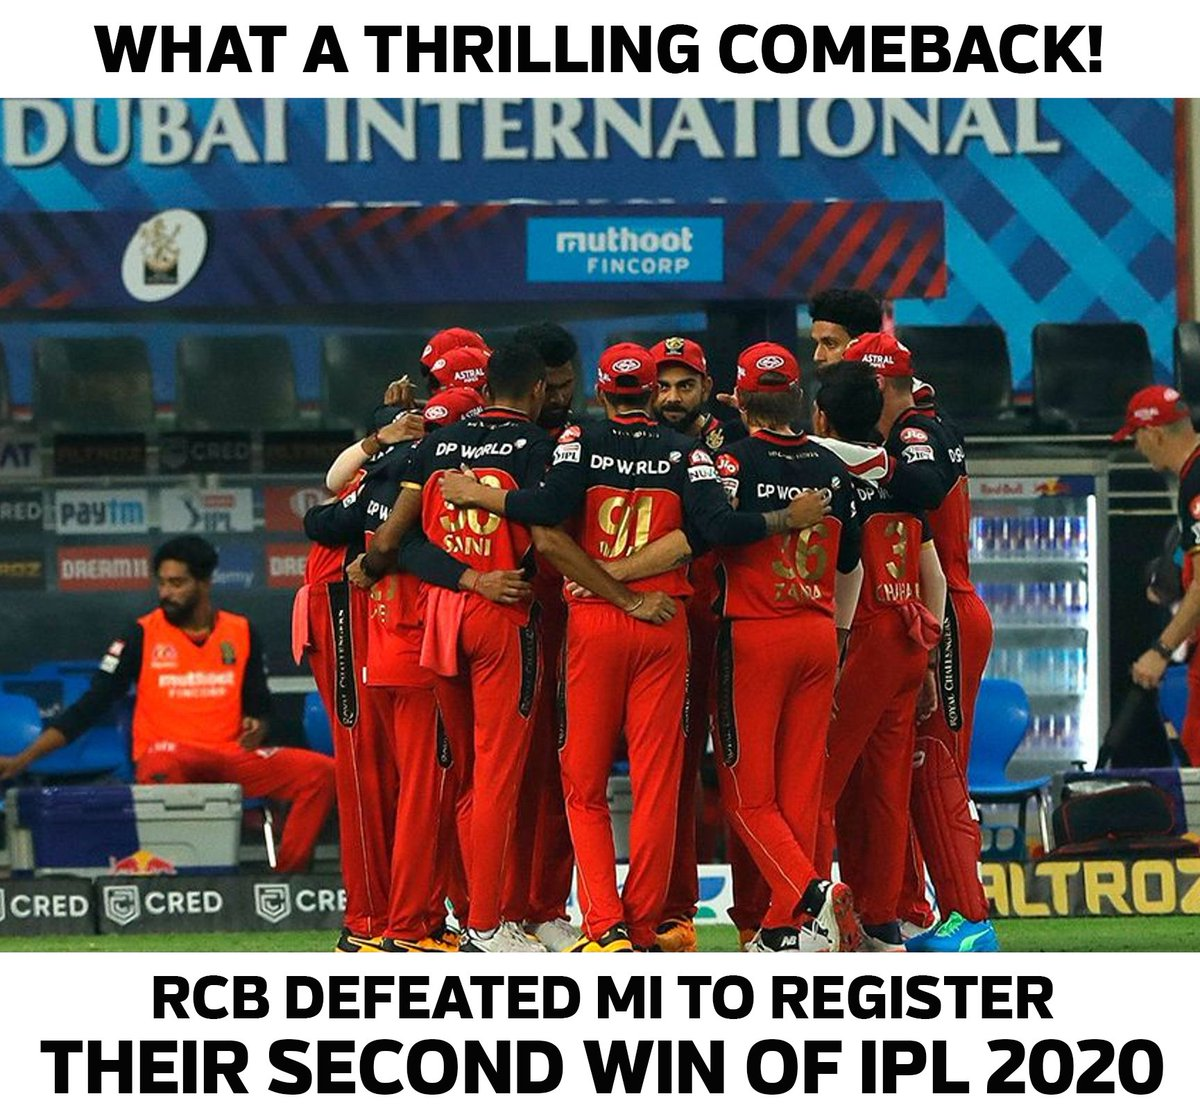 @imVkohli @RCBTweets RCB defeated MI in the super over to register their second  win of the IPL 2020. Amazing  two finest cricket matches in a row ever in world cricket #Yesterday #Today   fantastic game by both teams. This is the beauty of circket #RCB #MI #Dream11IPL  @imVkohli @ImRo45 https://t.co/eR9HuFB1yr